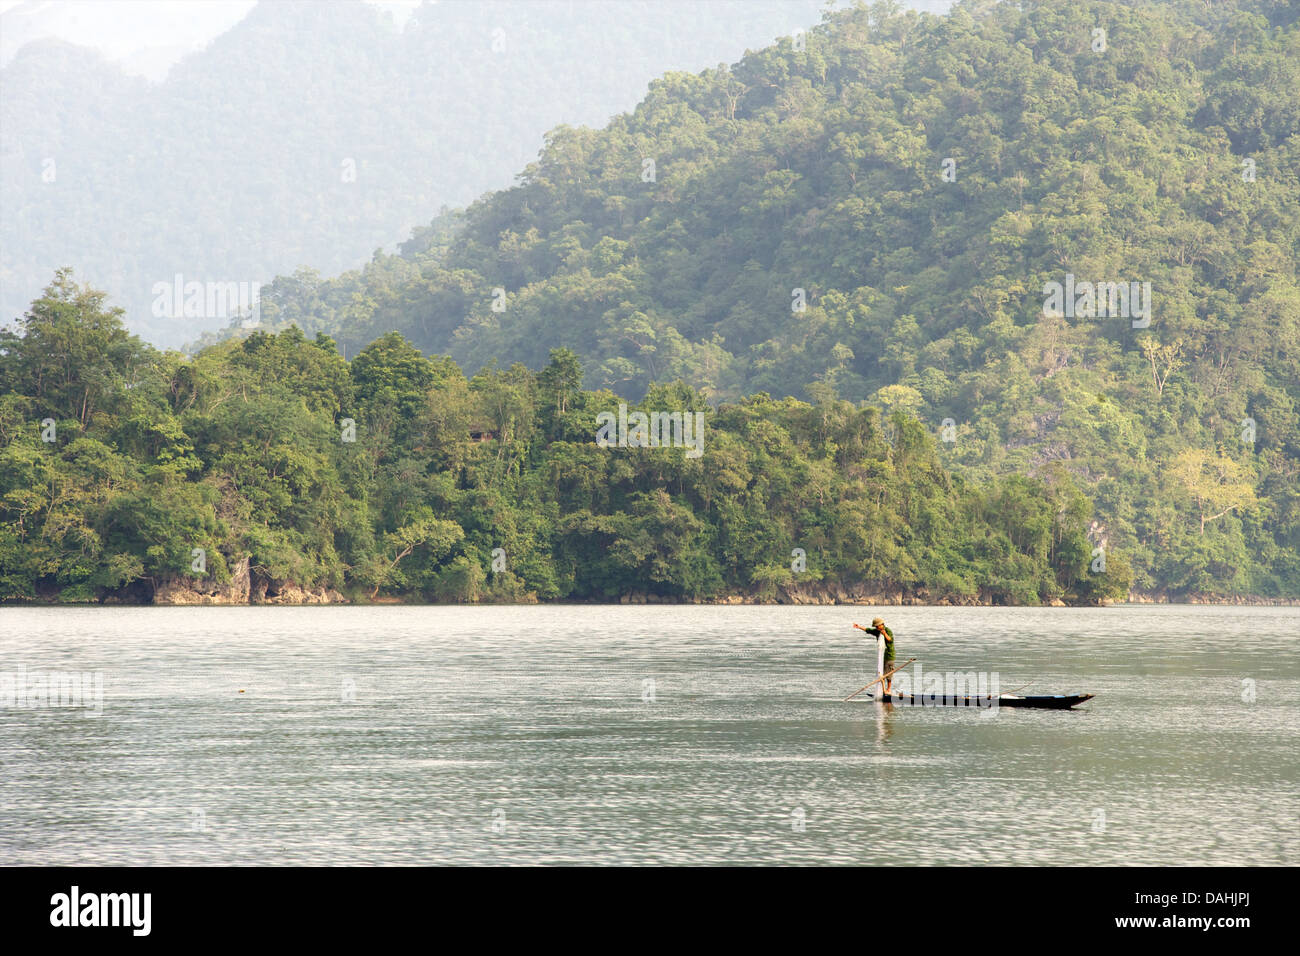 Fishing from a canoe with nets. Ba Be lake is the largest natural lake in Vietnam.  Bac Kan Province. Northeast - Stock Image